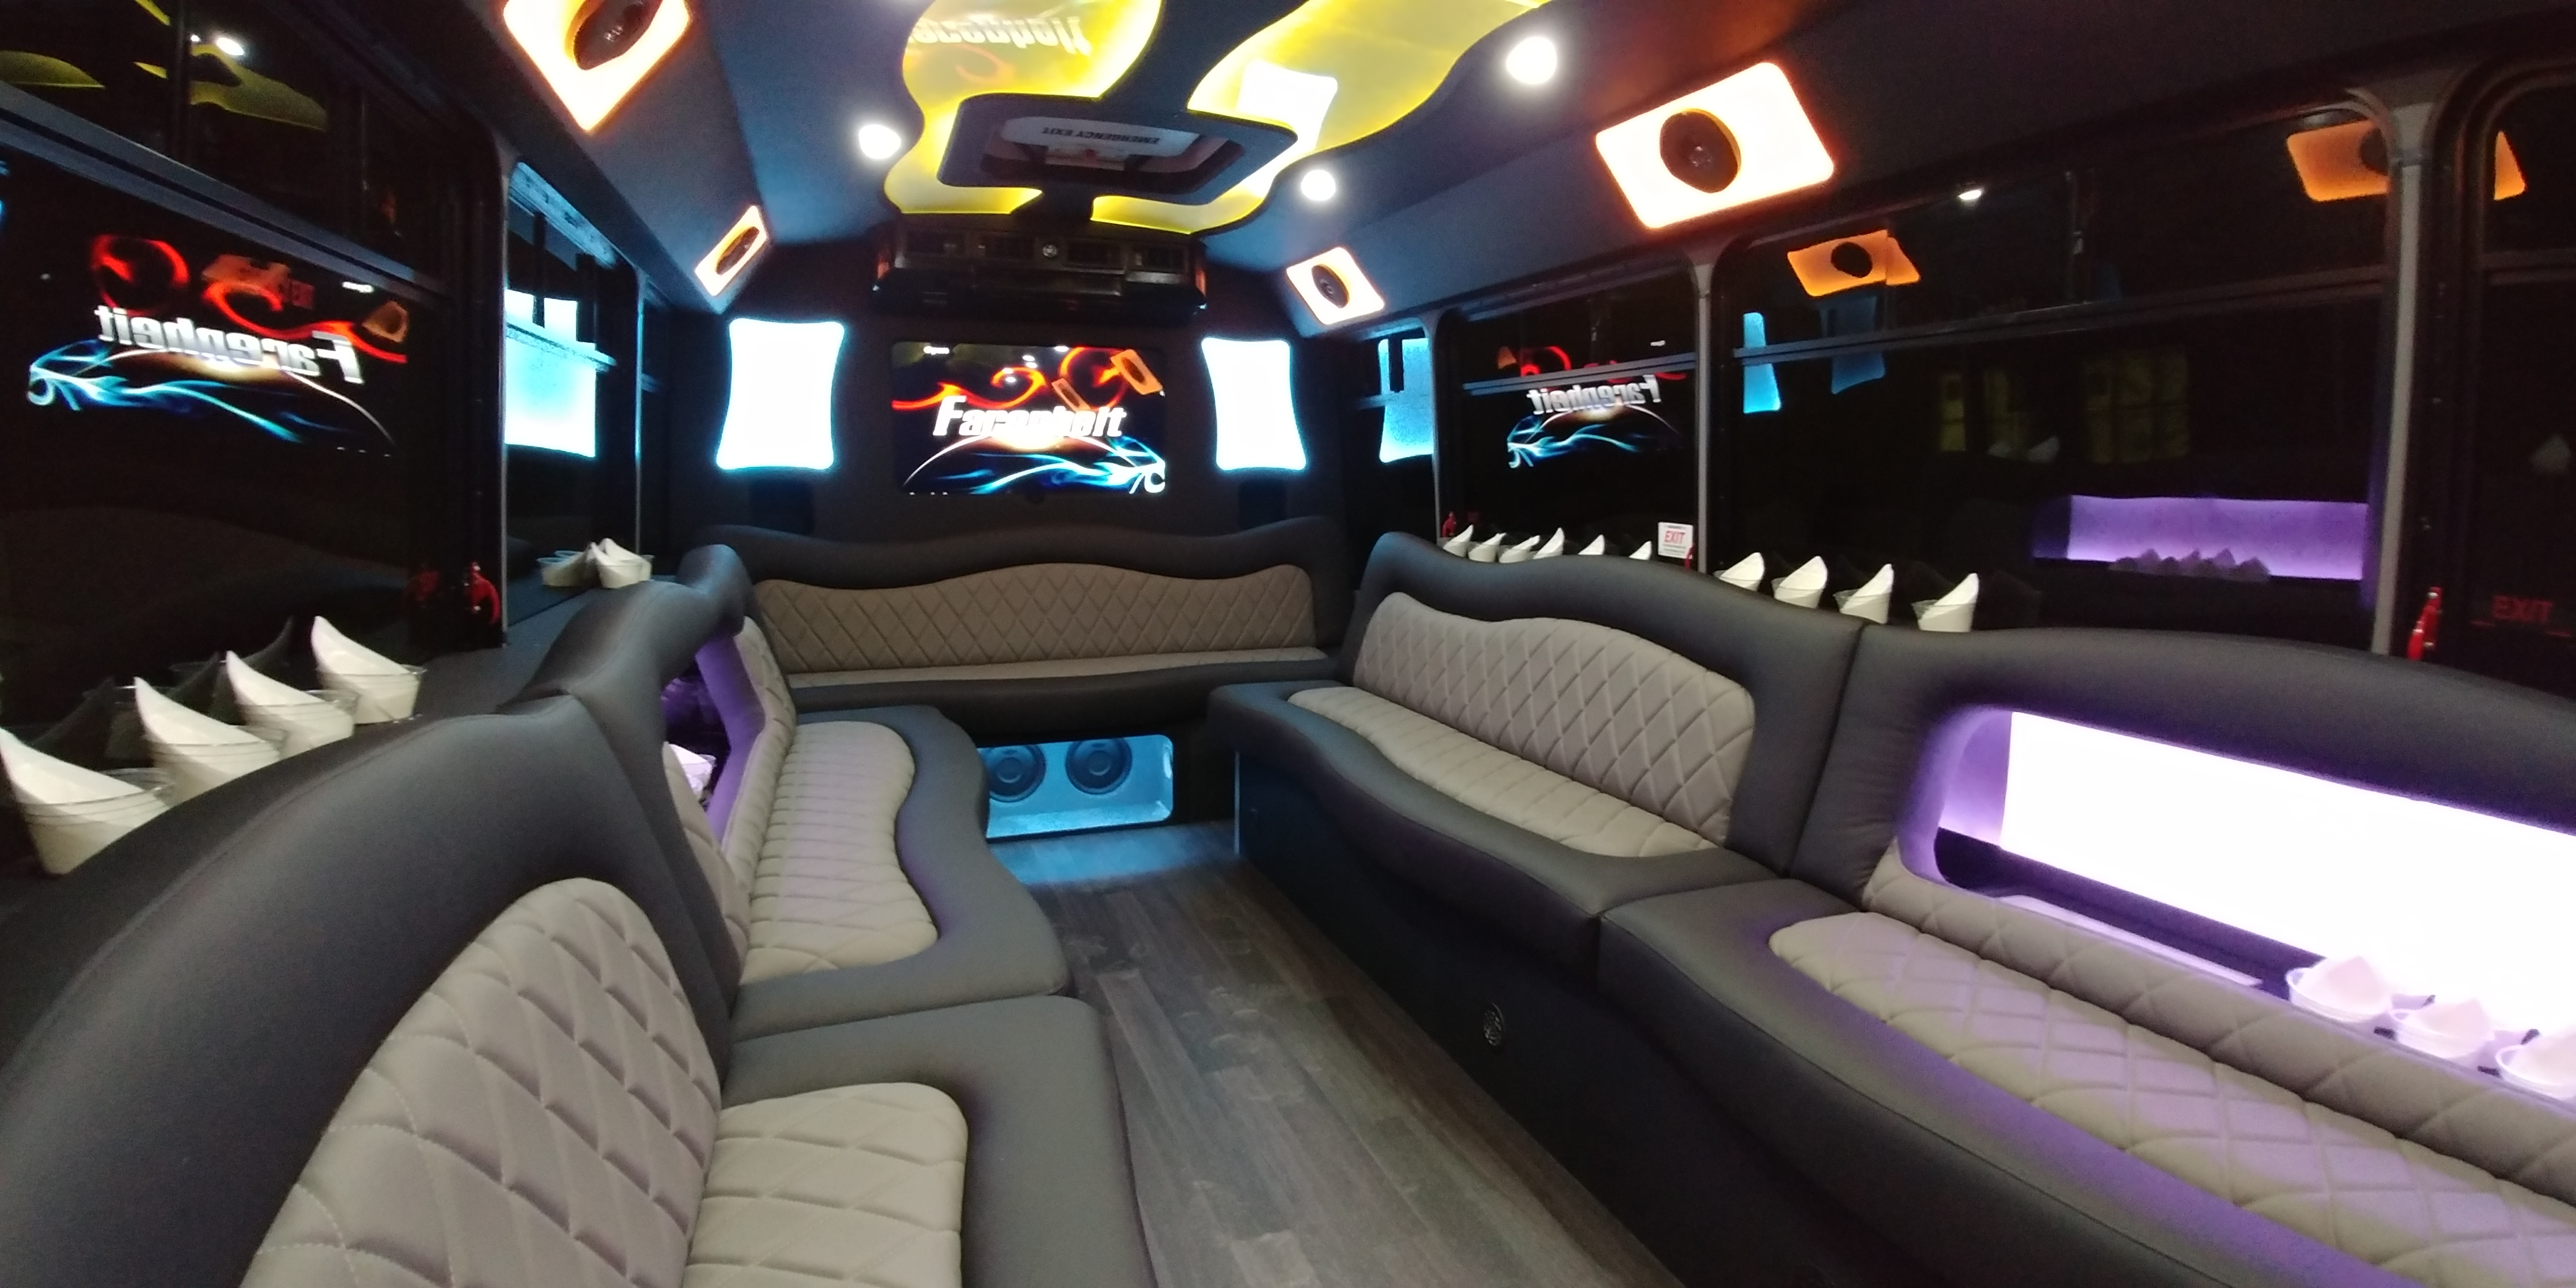 18 Passenger Luxury Limo Bus Nighttime Interior 1